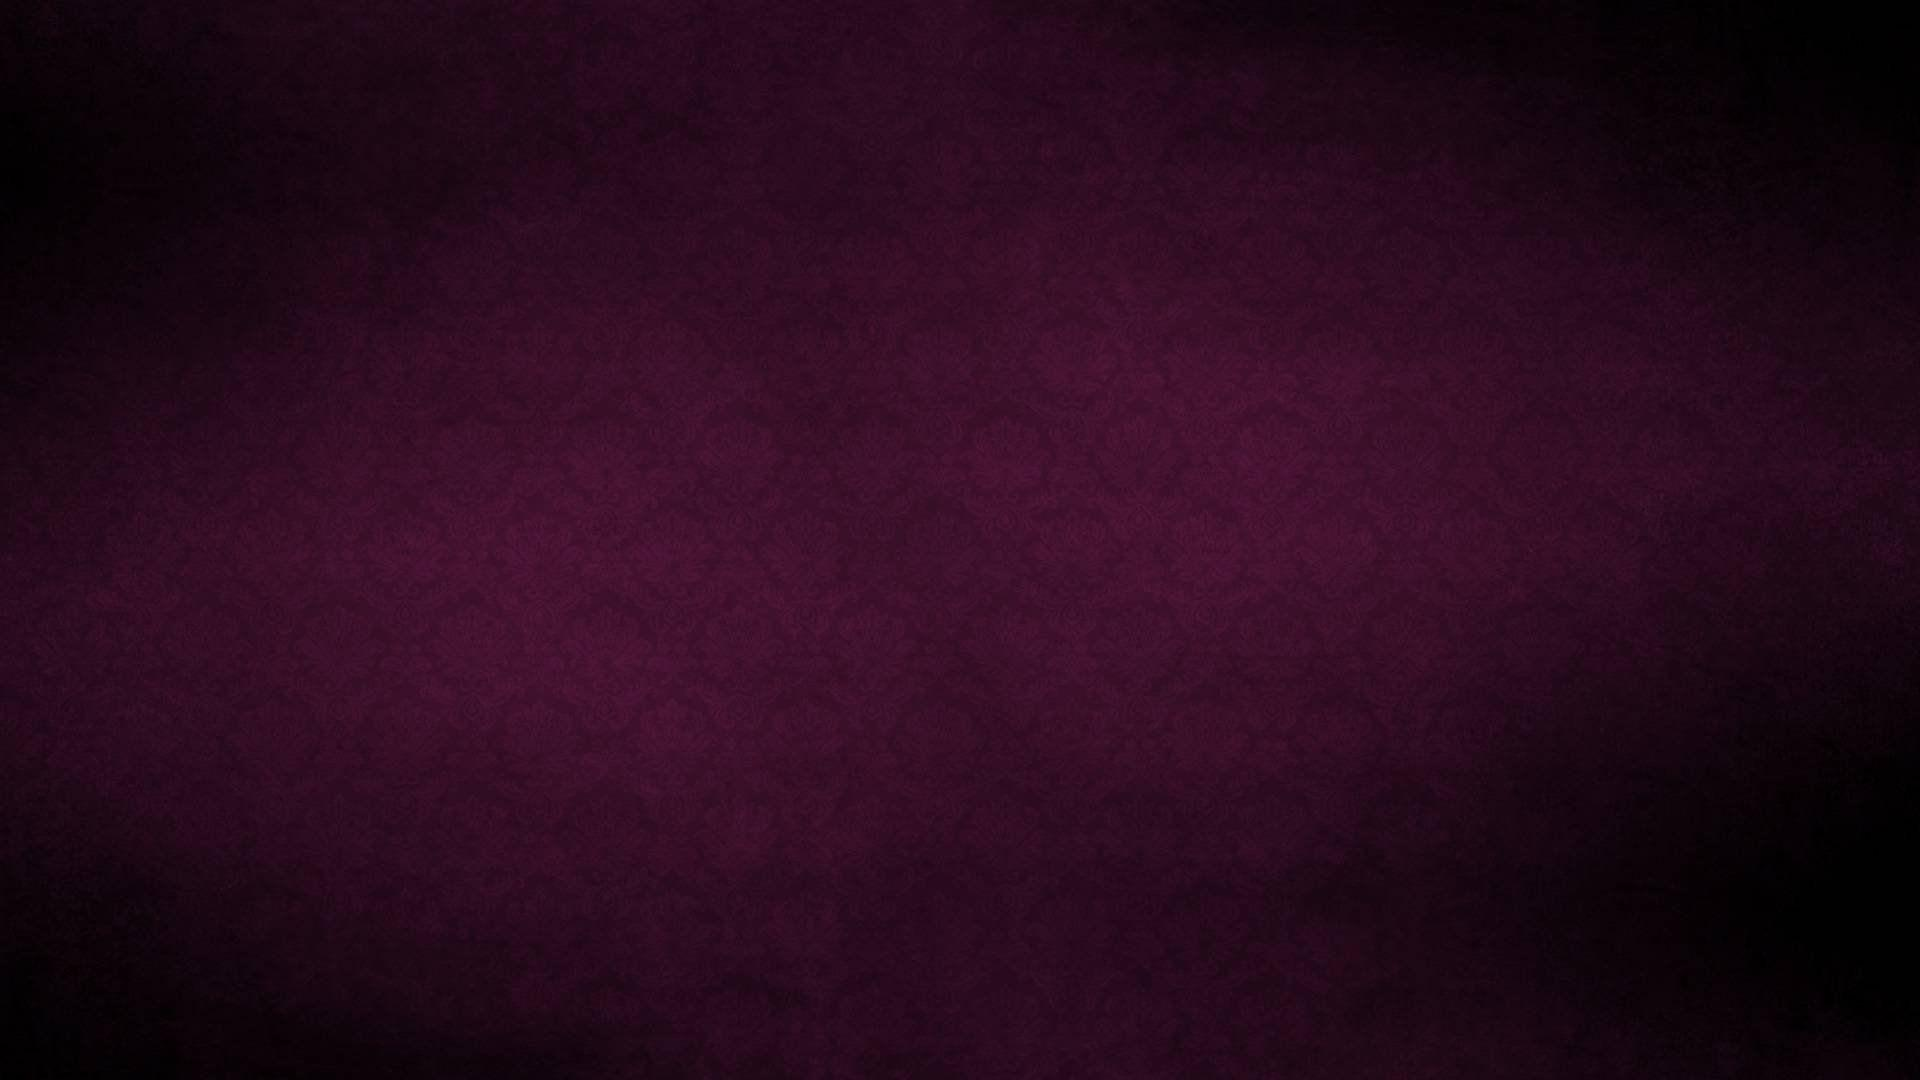 Hd Plain Backgrounds Wallpaper Cave